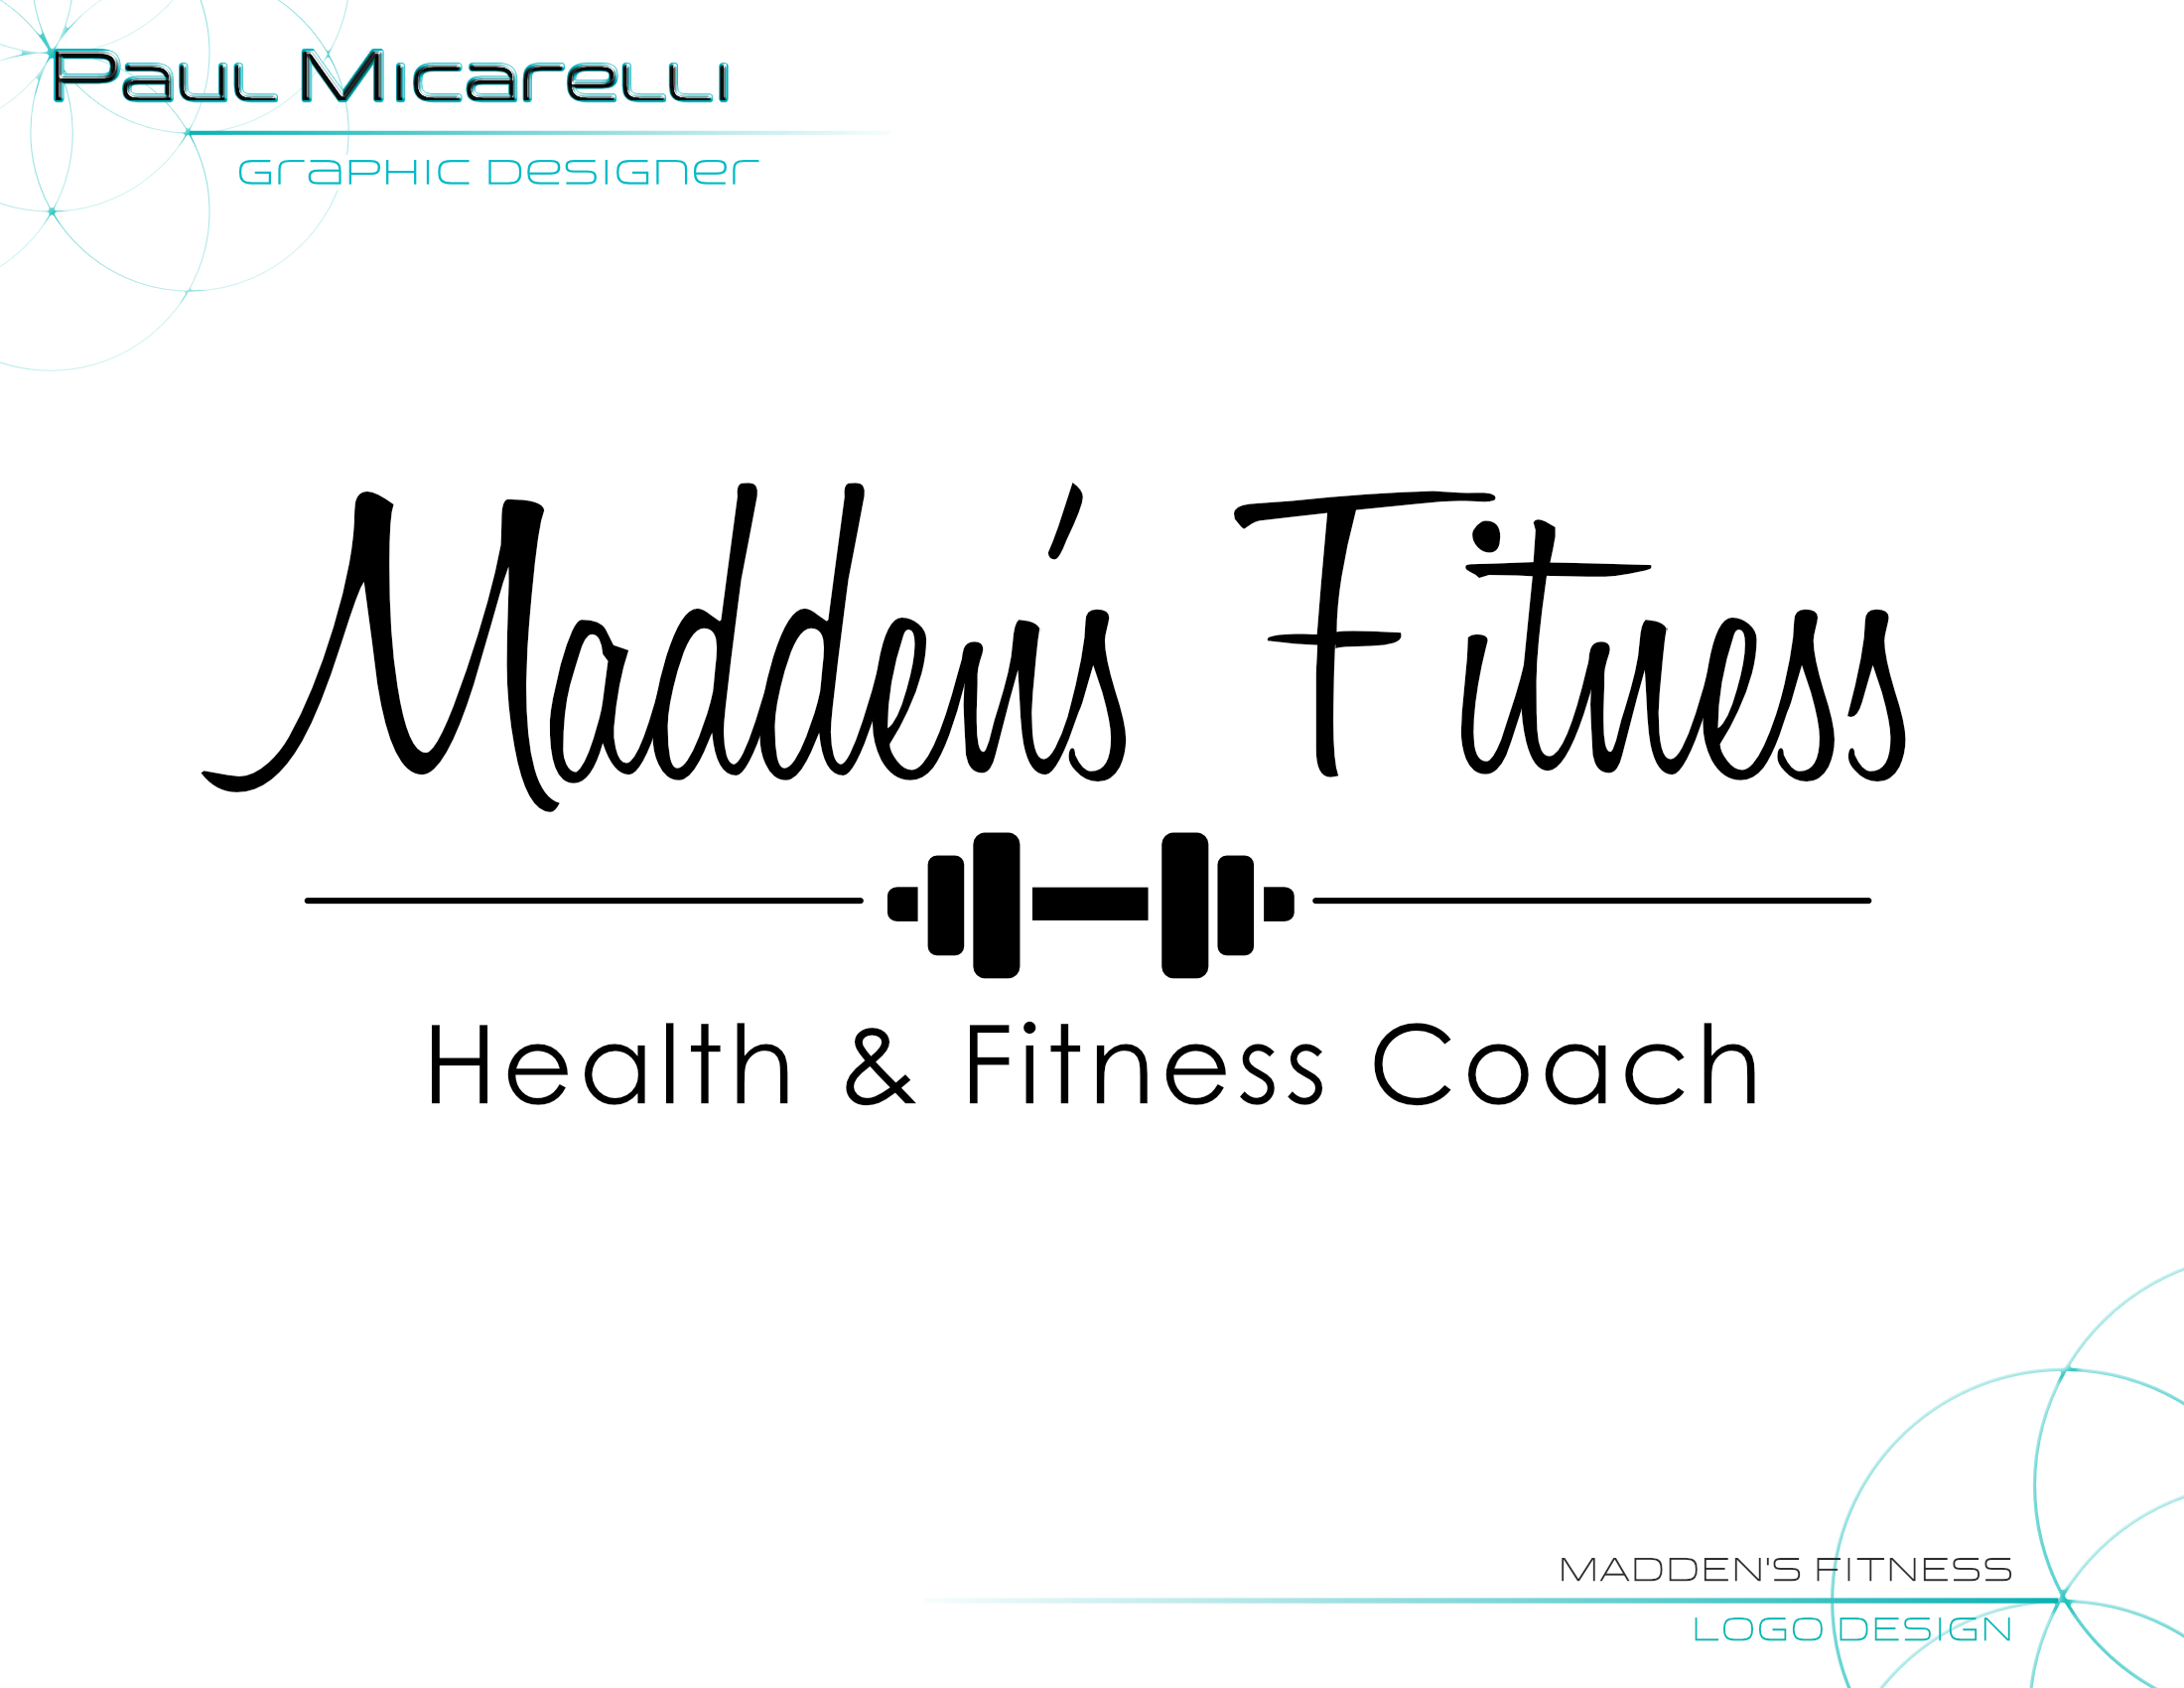 Paul-Micarelli-Maddens Fitness Logo